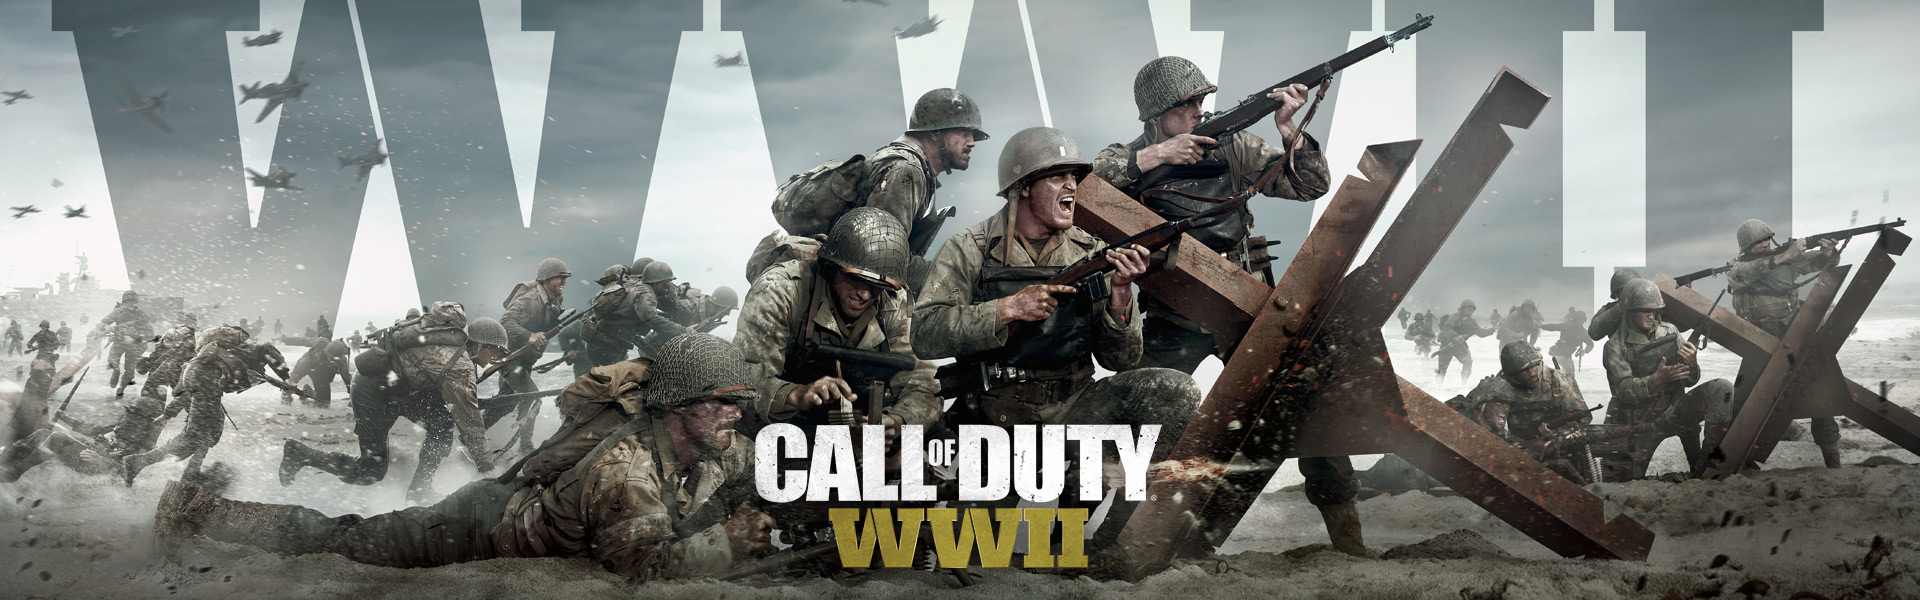 Call of Duty WWII, Soldater stormer en strand i Normandiet